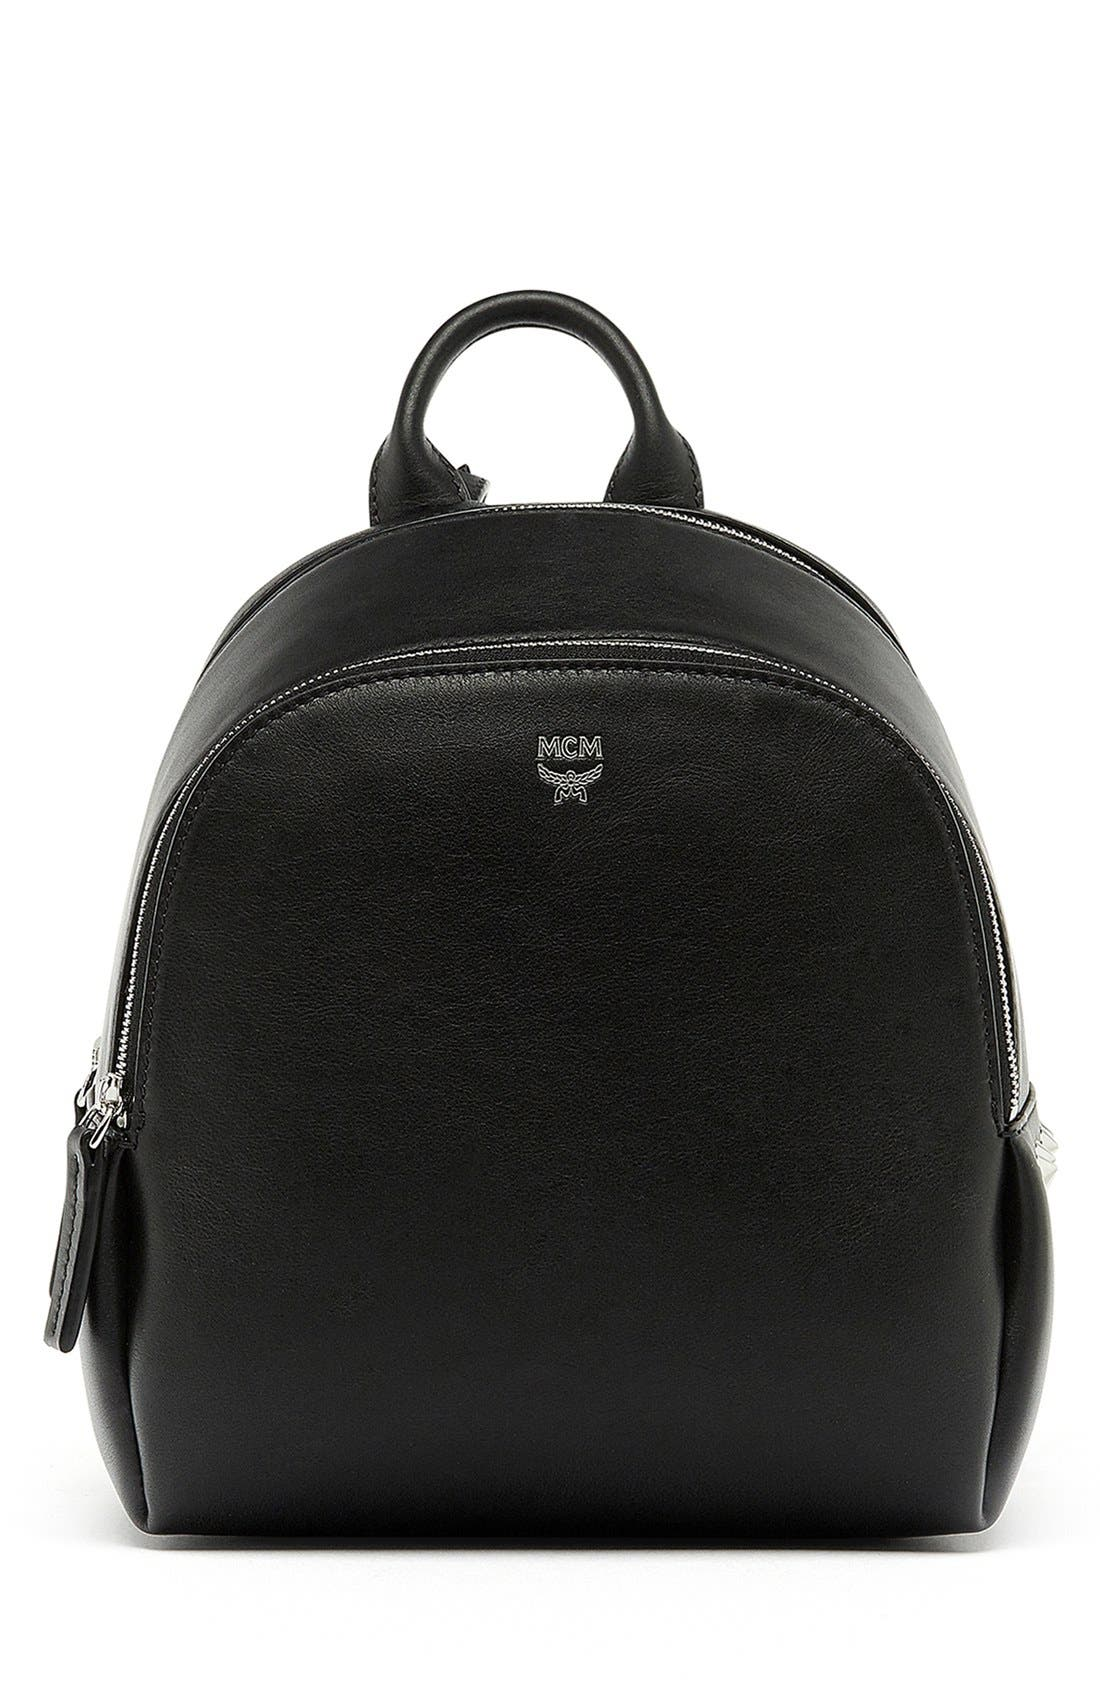 Alternate Image 1 Selected - MCM 'Mini Duchess' Leather Backpack